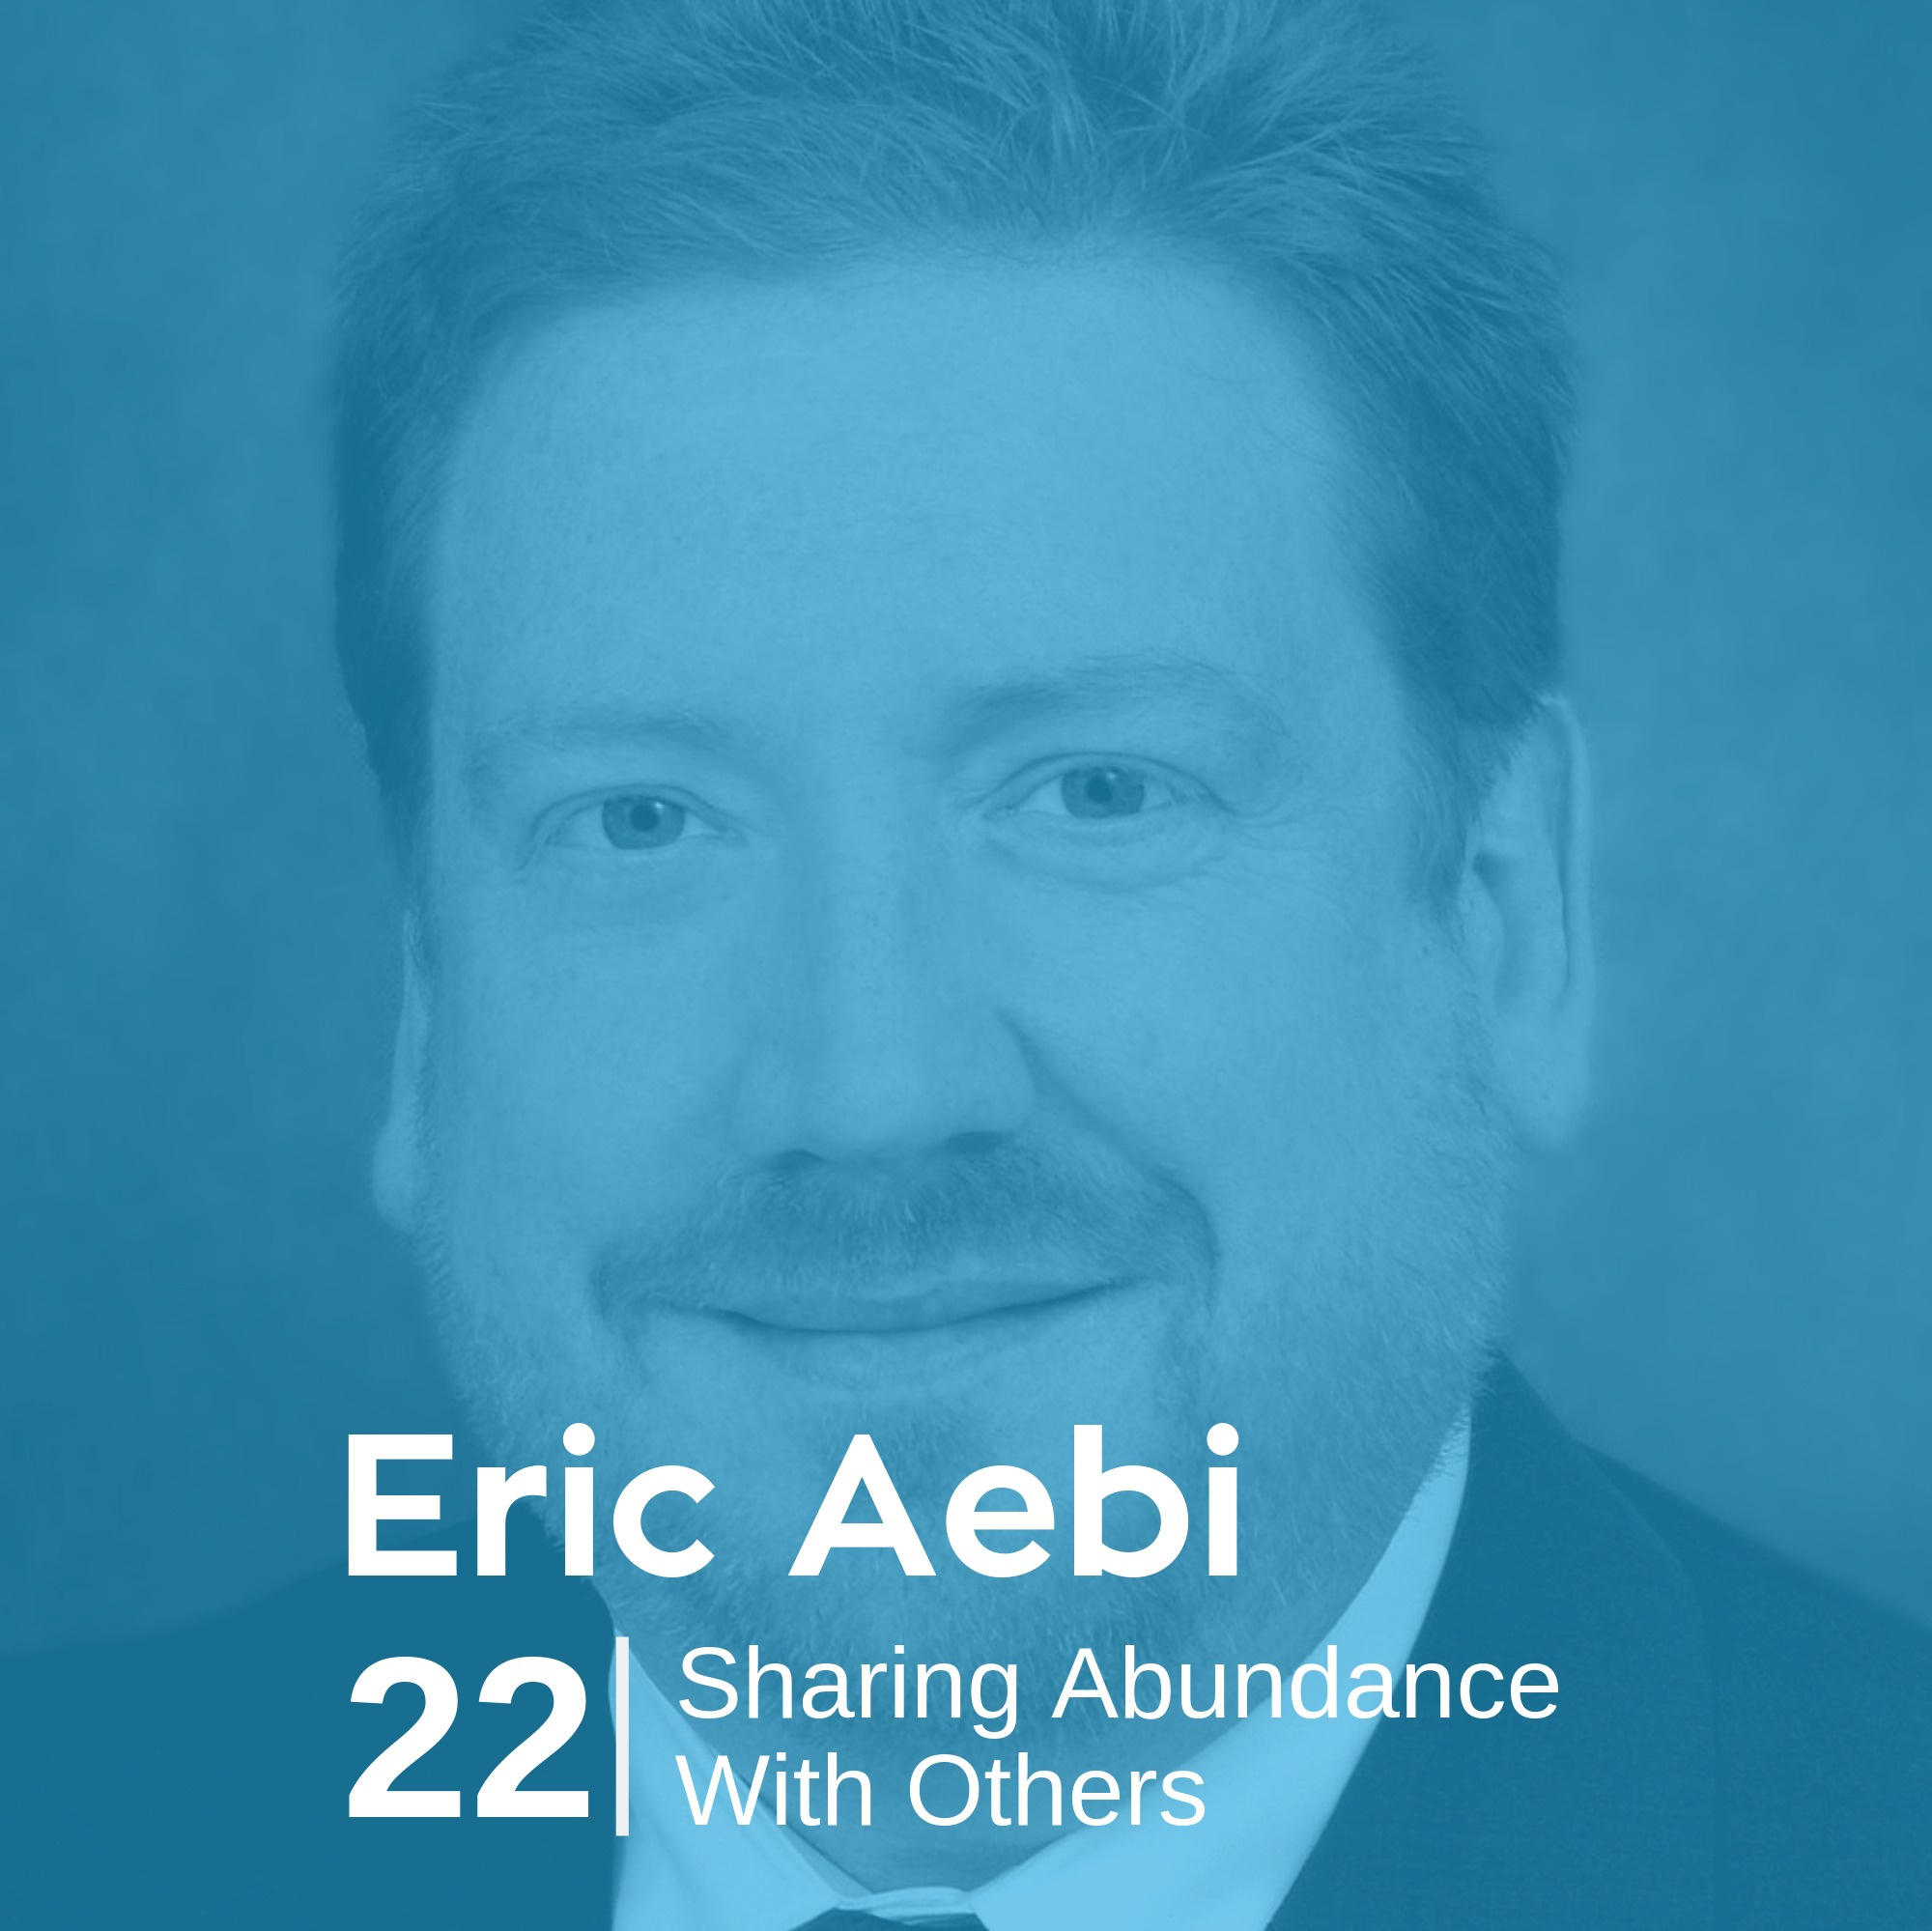 Ep 22. Eric Aebi - Sharing Abundance With Others